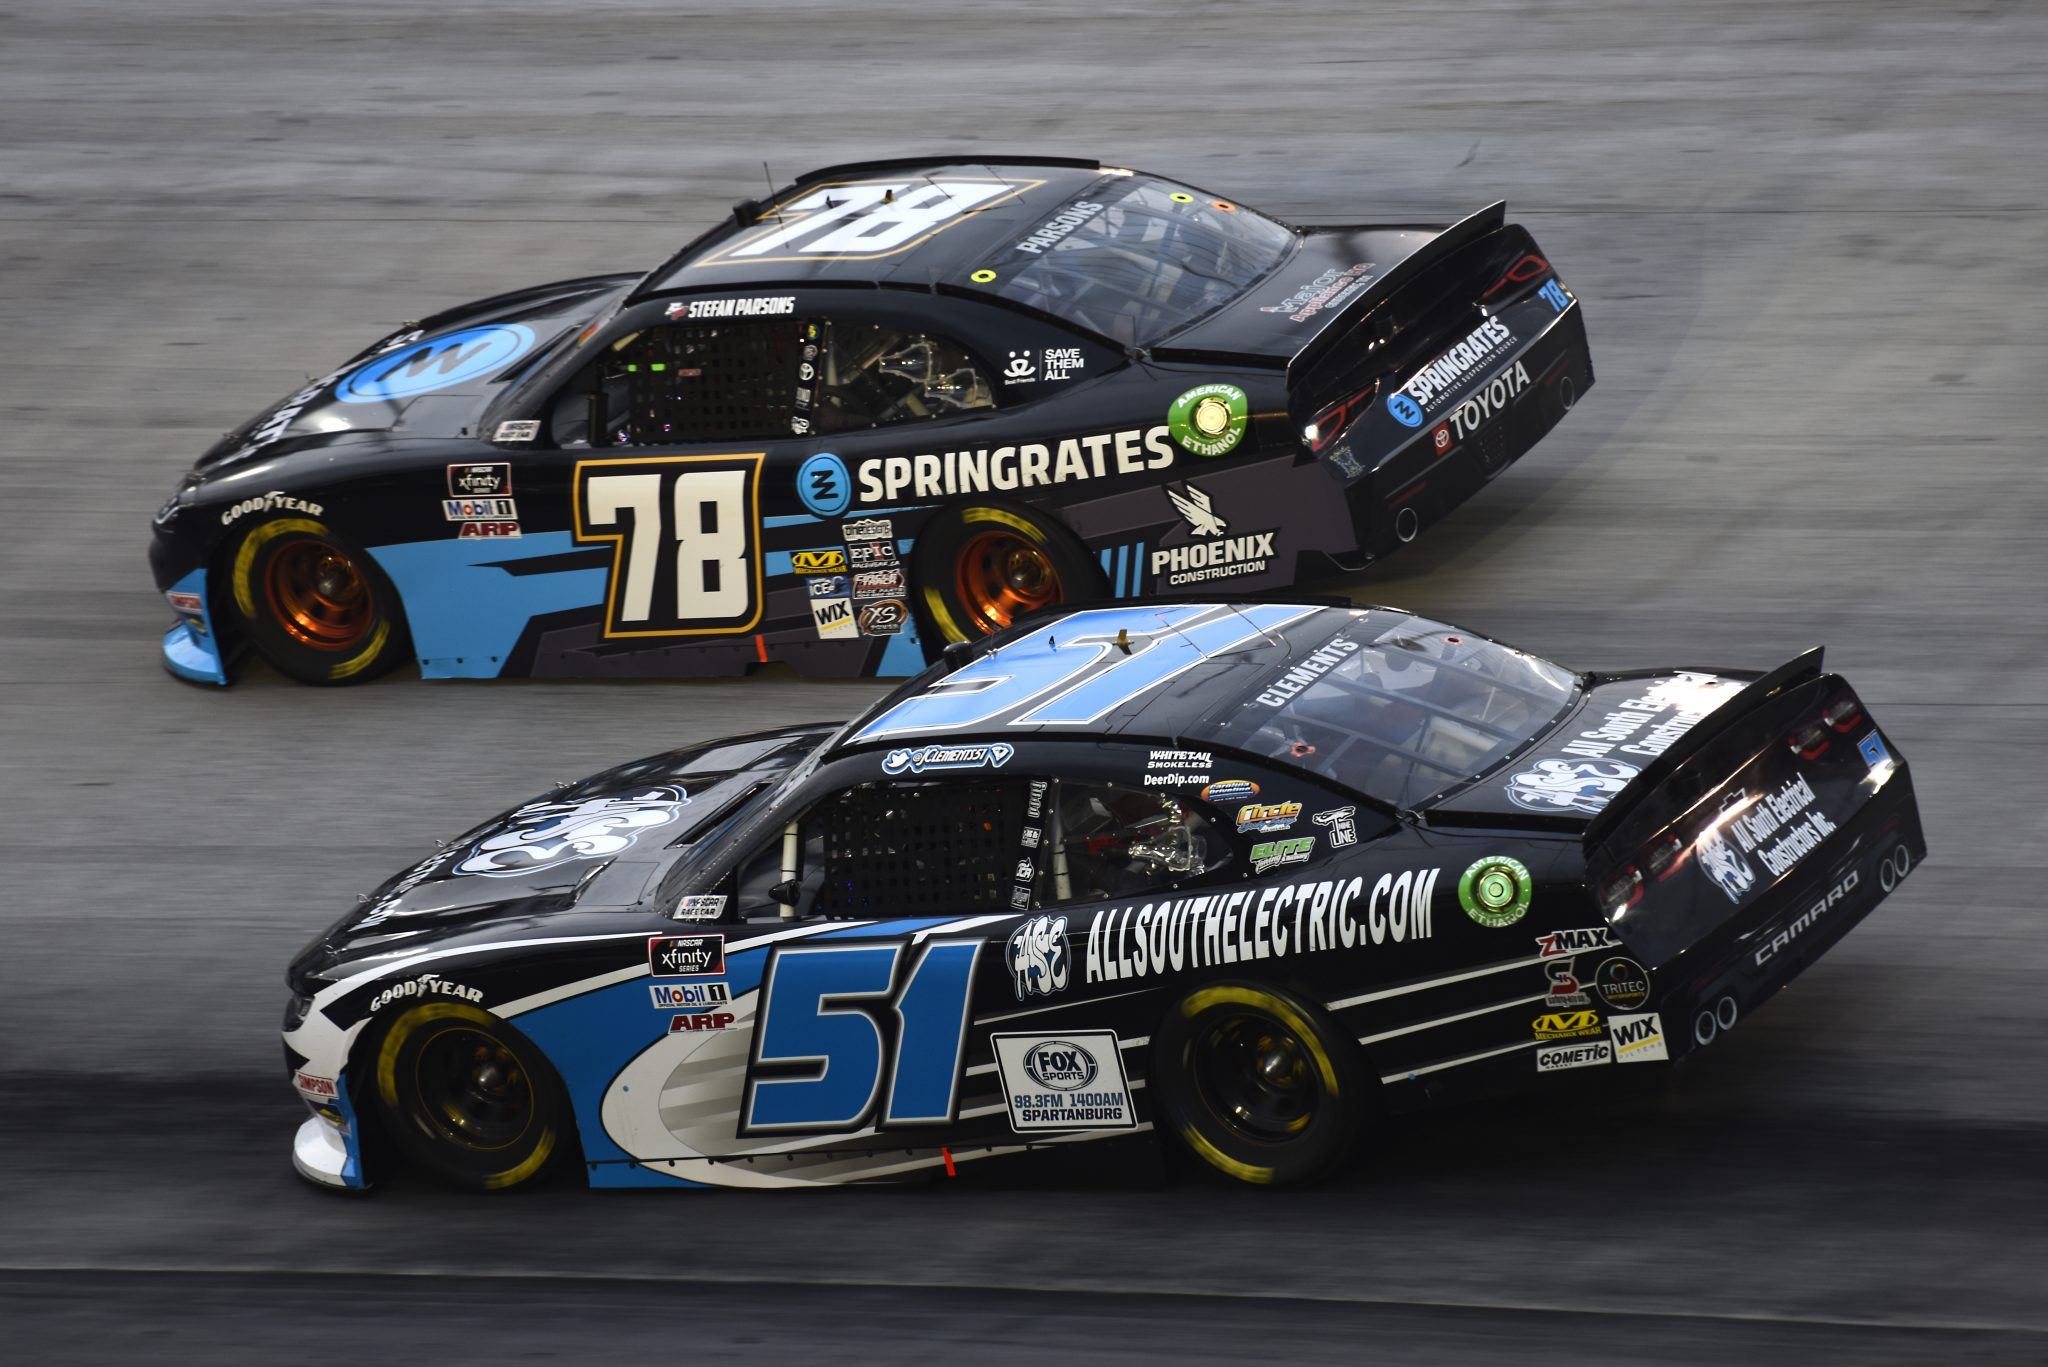 BRISTOL, TENNESSEE - SEPTEMBER 18: Jeremy Clements, driver of the #51 AllSouthElectric.com Chevrolet, and Stefan Parsons, driver of the #78 Springrates Toyota, race during the NASCAR Xfinity Series Food City 300 at Bristol Motor Speedway on September 18, 2020 in Bristol, Tennessee. (Photo by Jared C. Tilton/Getty Images) | Getty Images